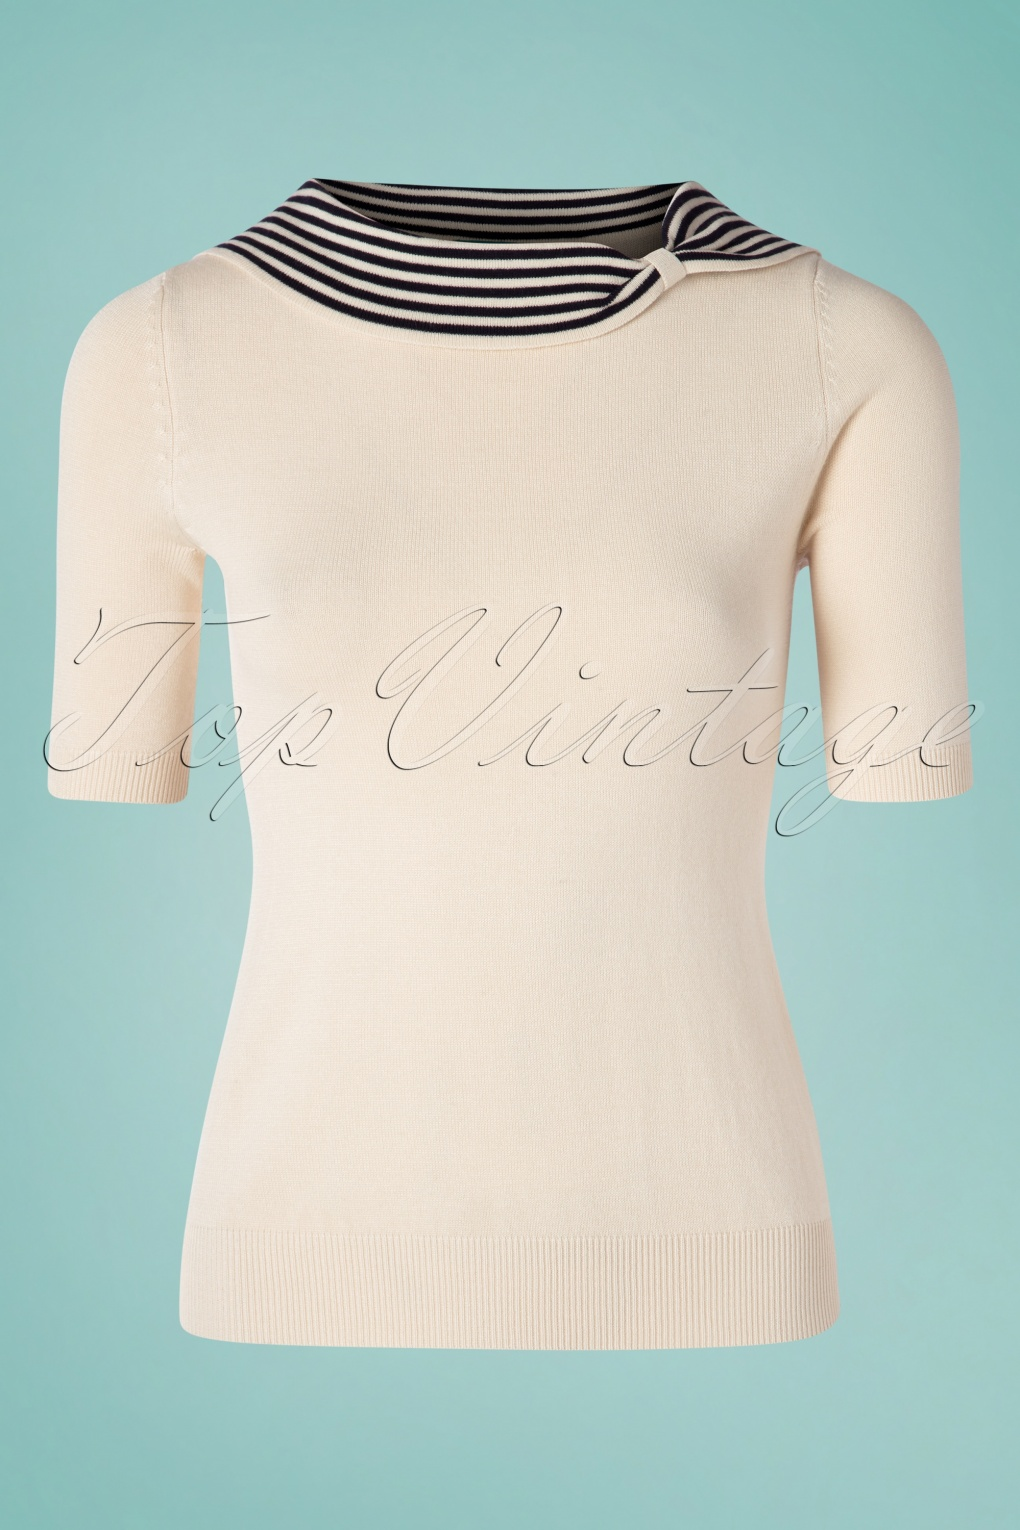 1950s Sweaters, 50s Cardigans, 50s Jumpers 50s Annette Knitted Top in Navy and Cream �51.43 AT vintagedancer.com